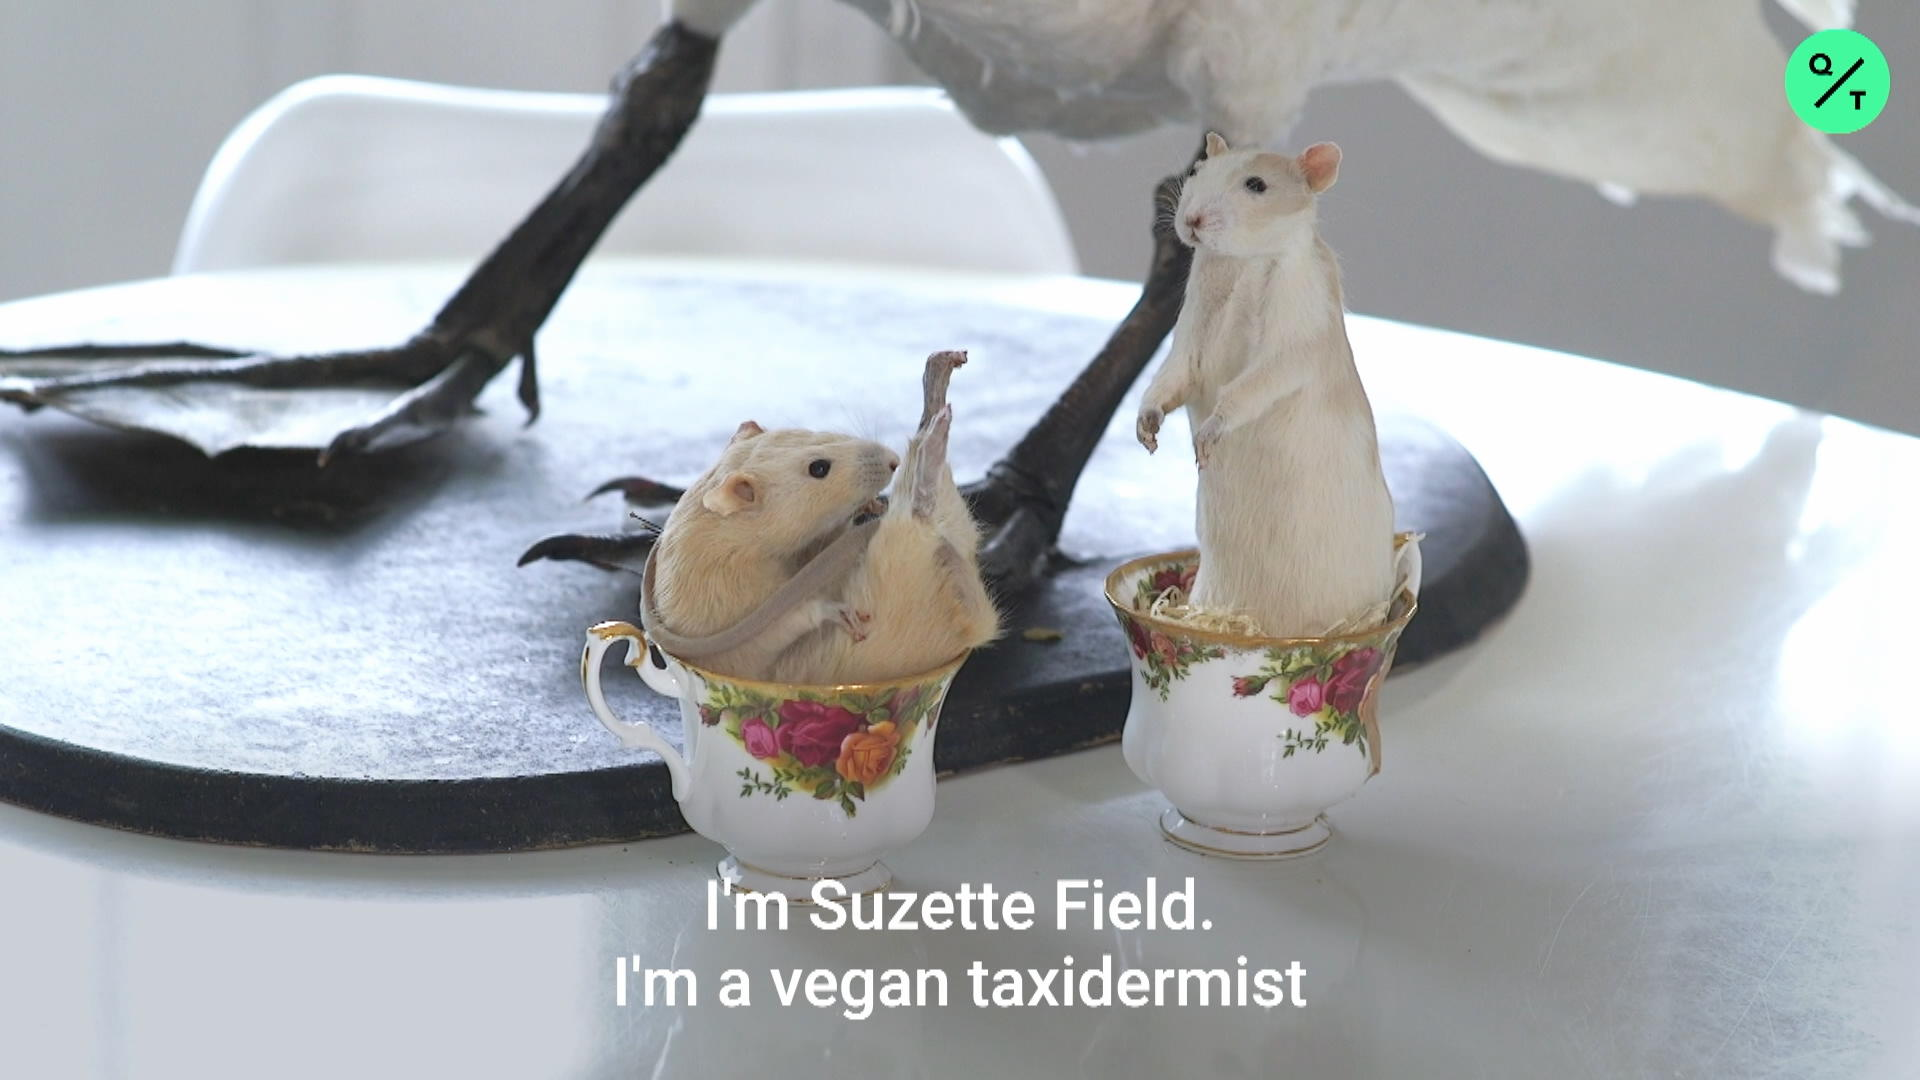 The Vegan Taxidermist